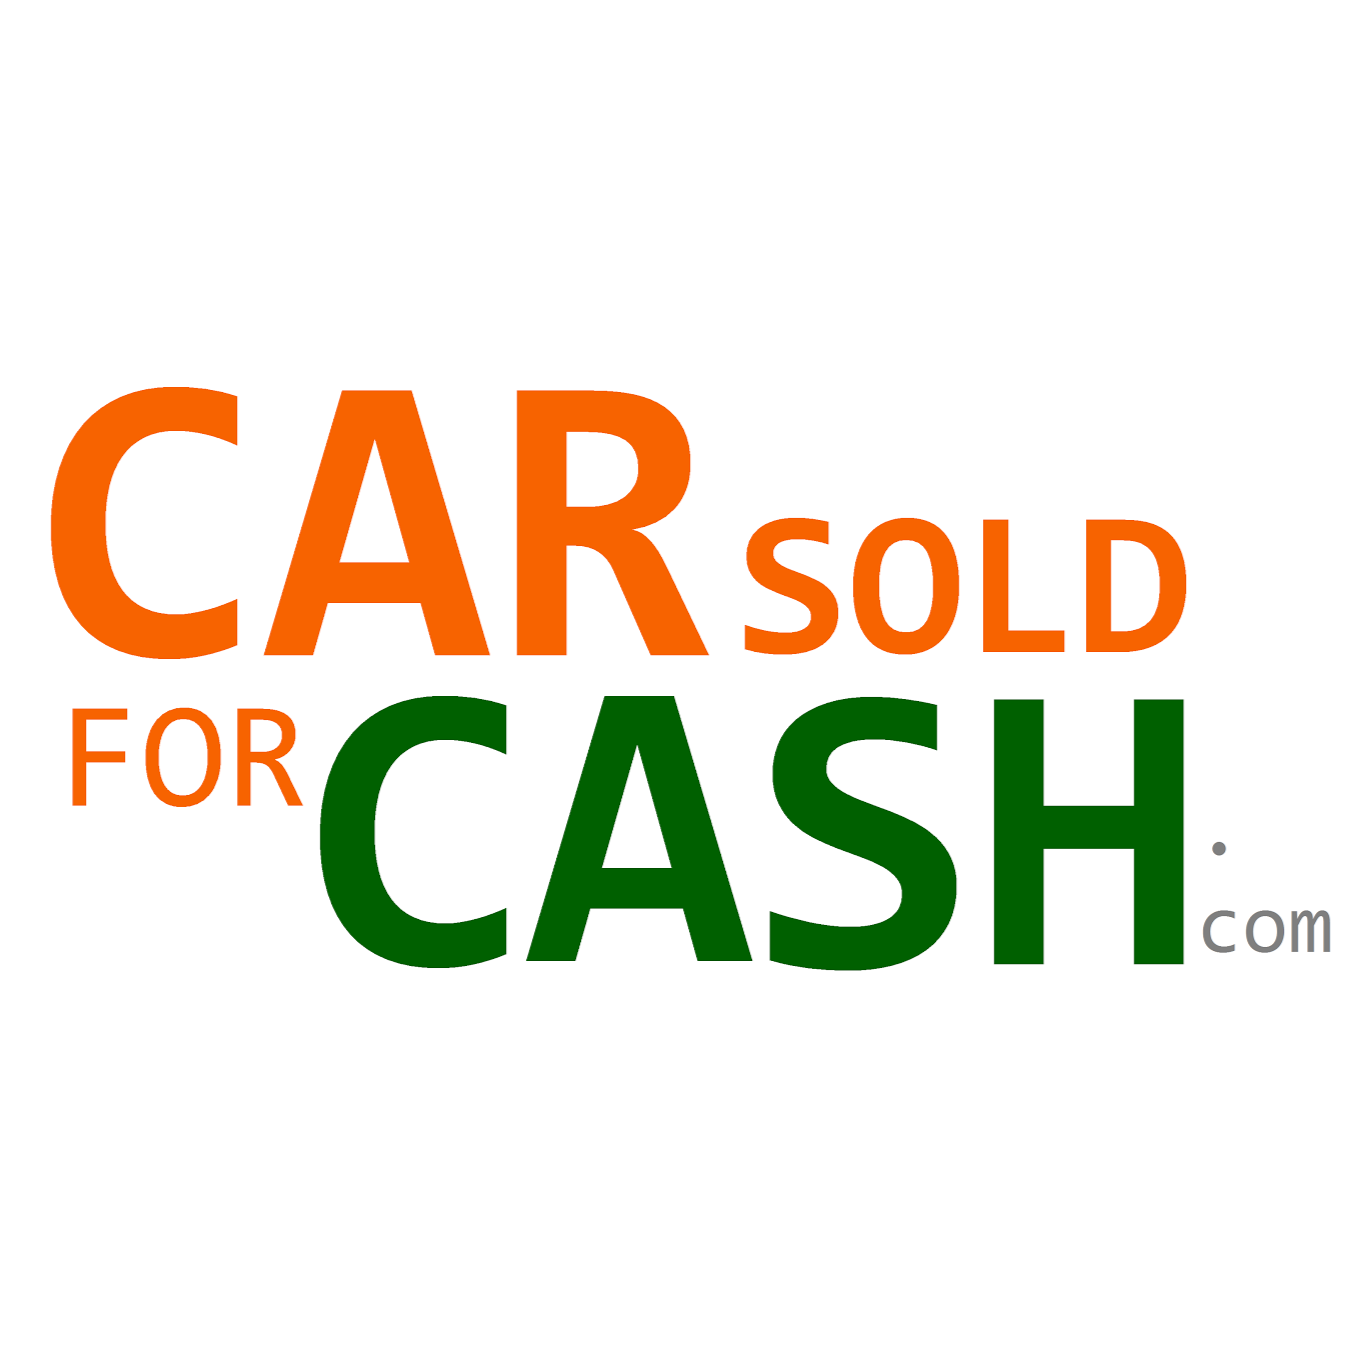 CarSoldForCash.com